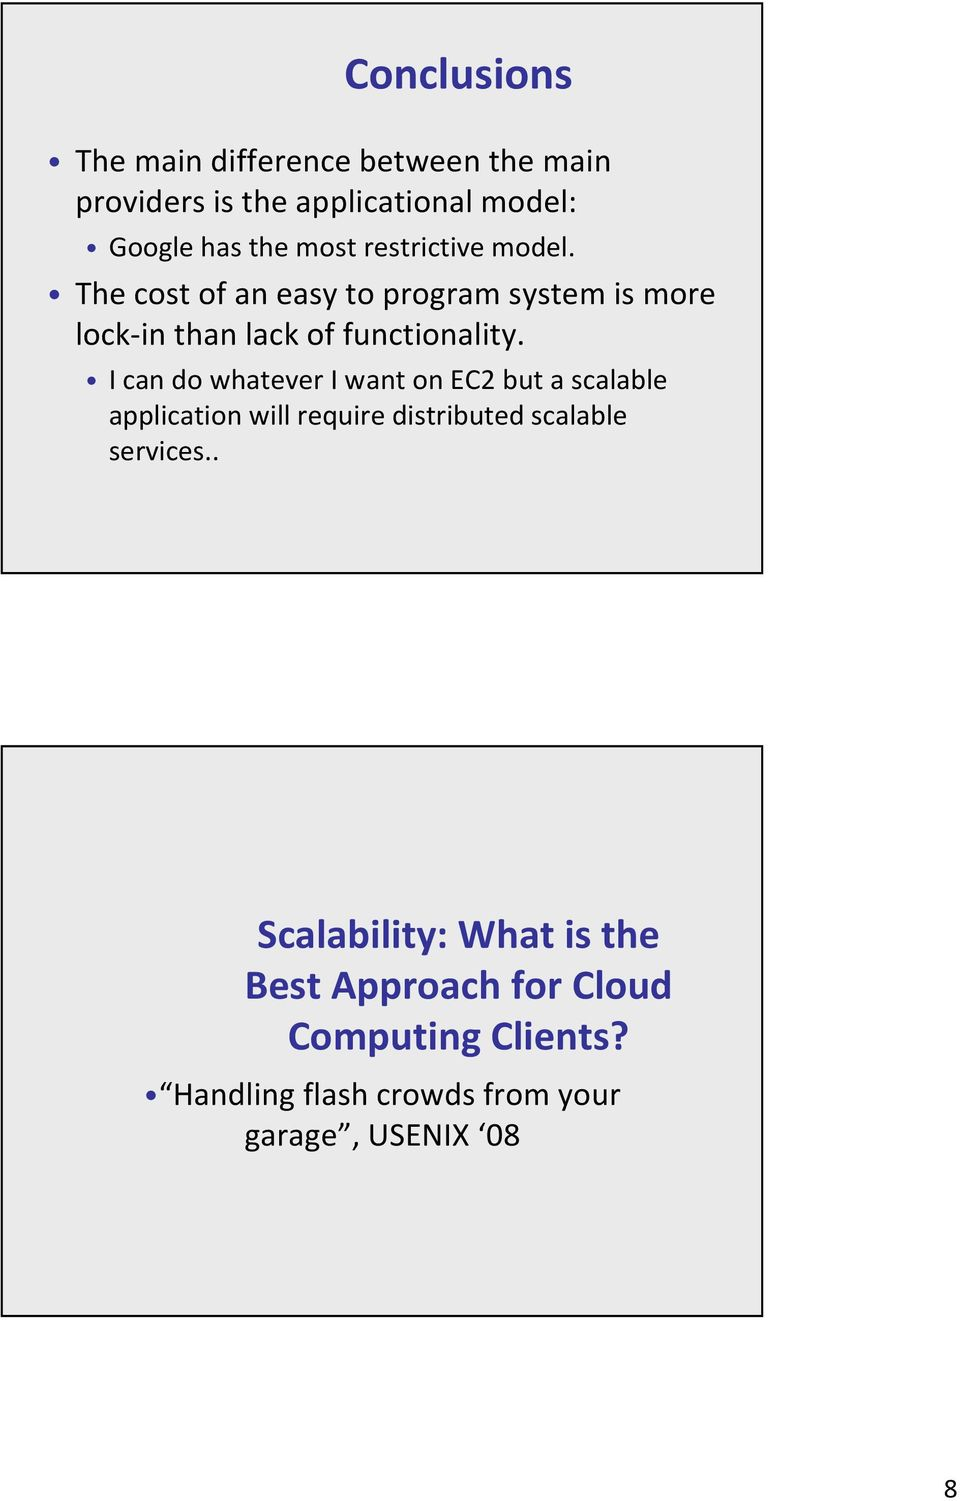 I can do whatever I want on EC2 but a scalable application will require distributed scalable services.